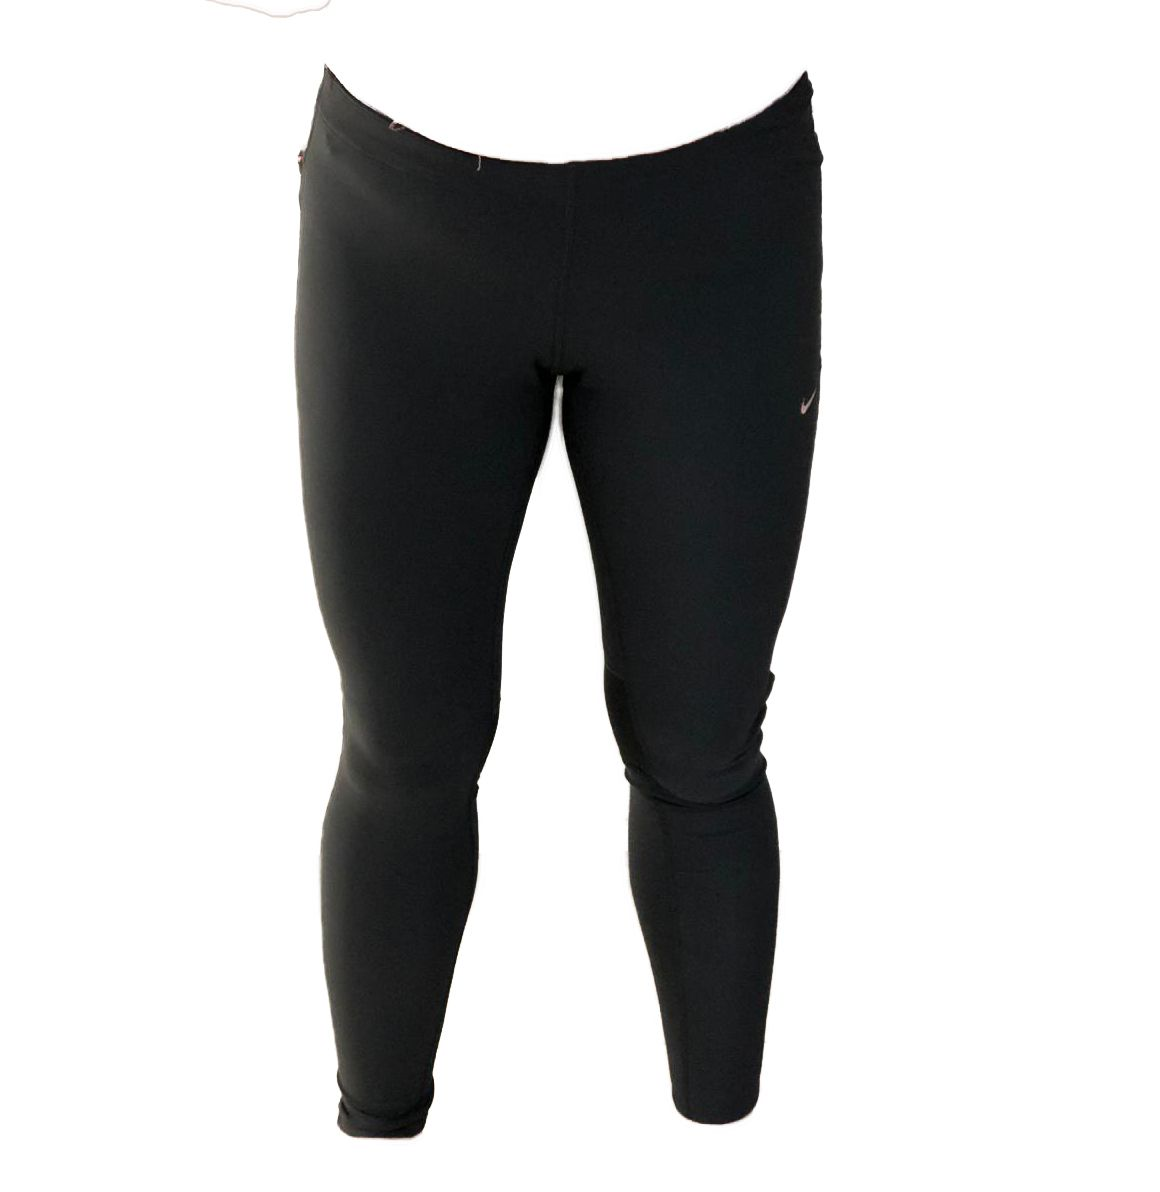 Calça Legging Nike Tech Tight Feminina